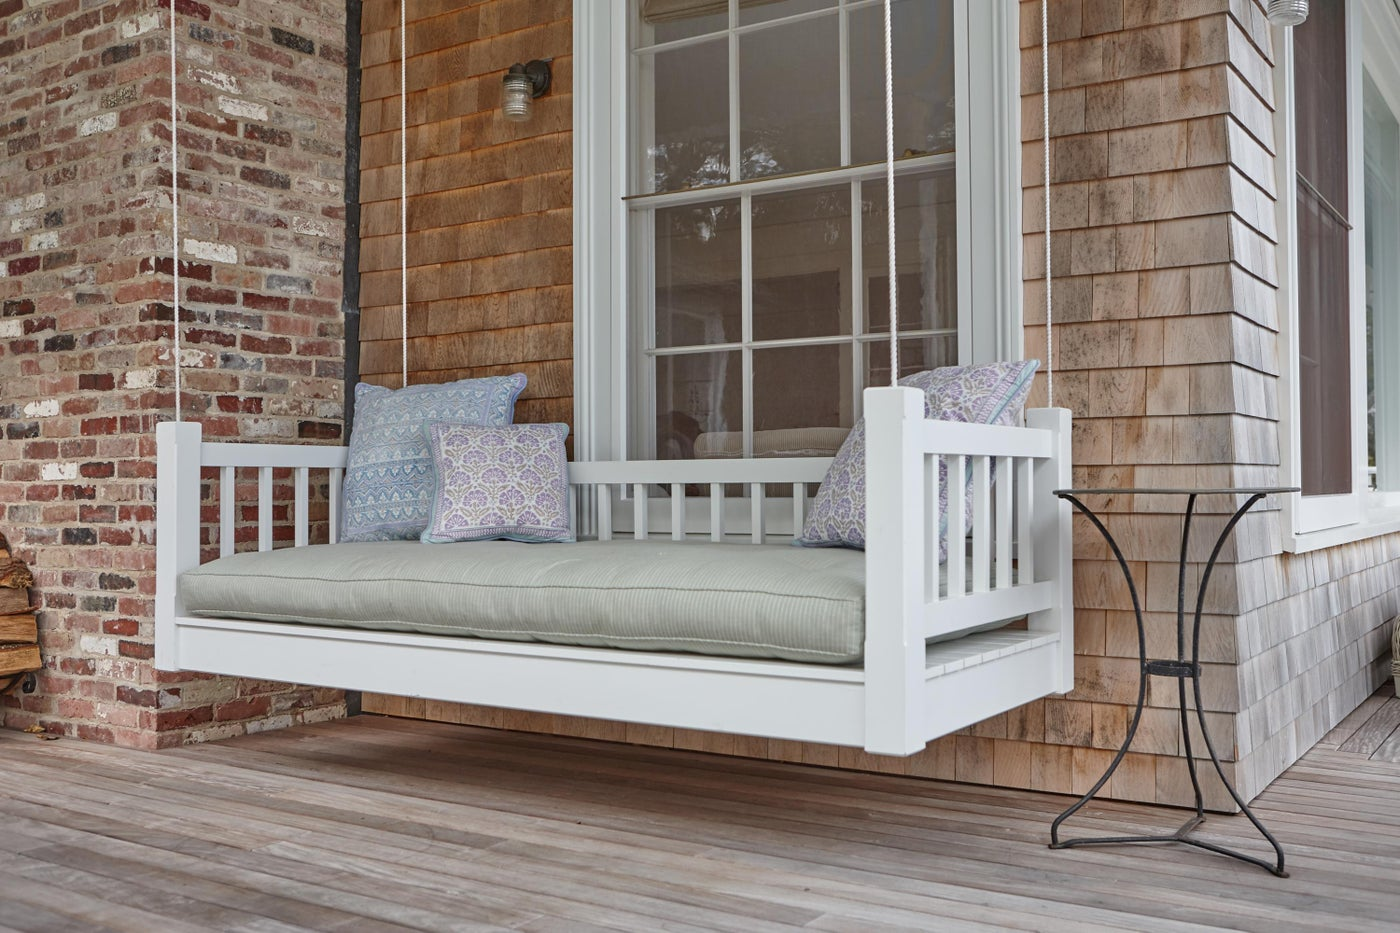 Daybed on exterior porch.